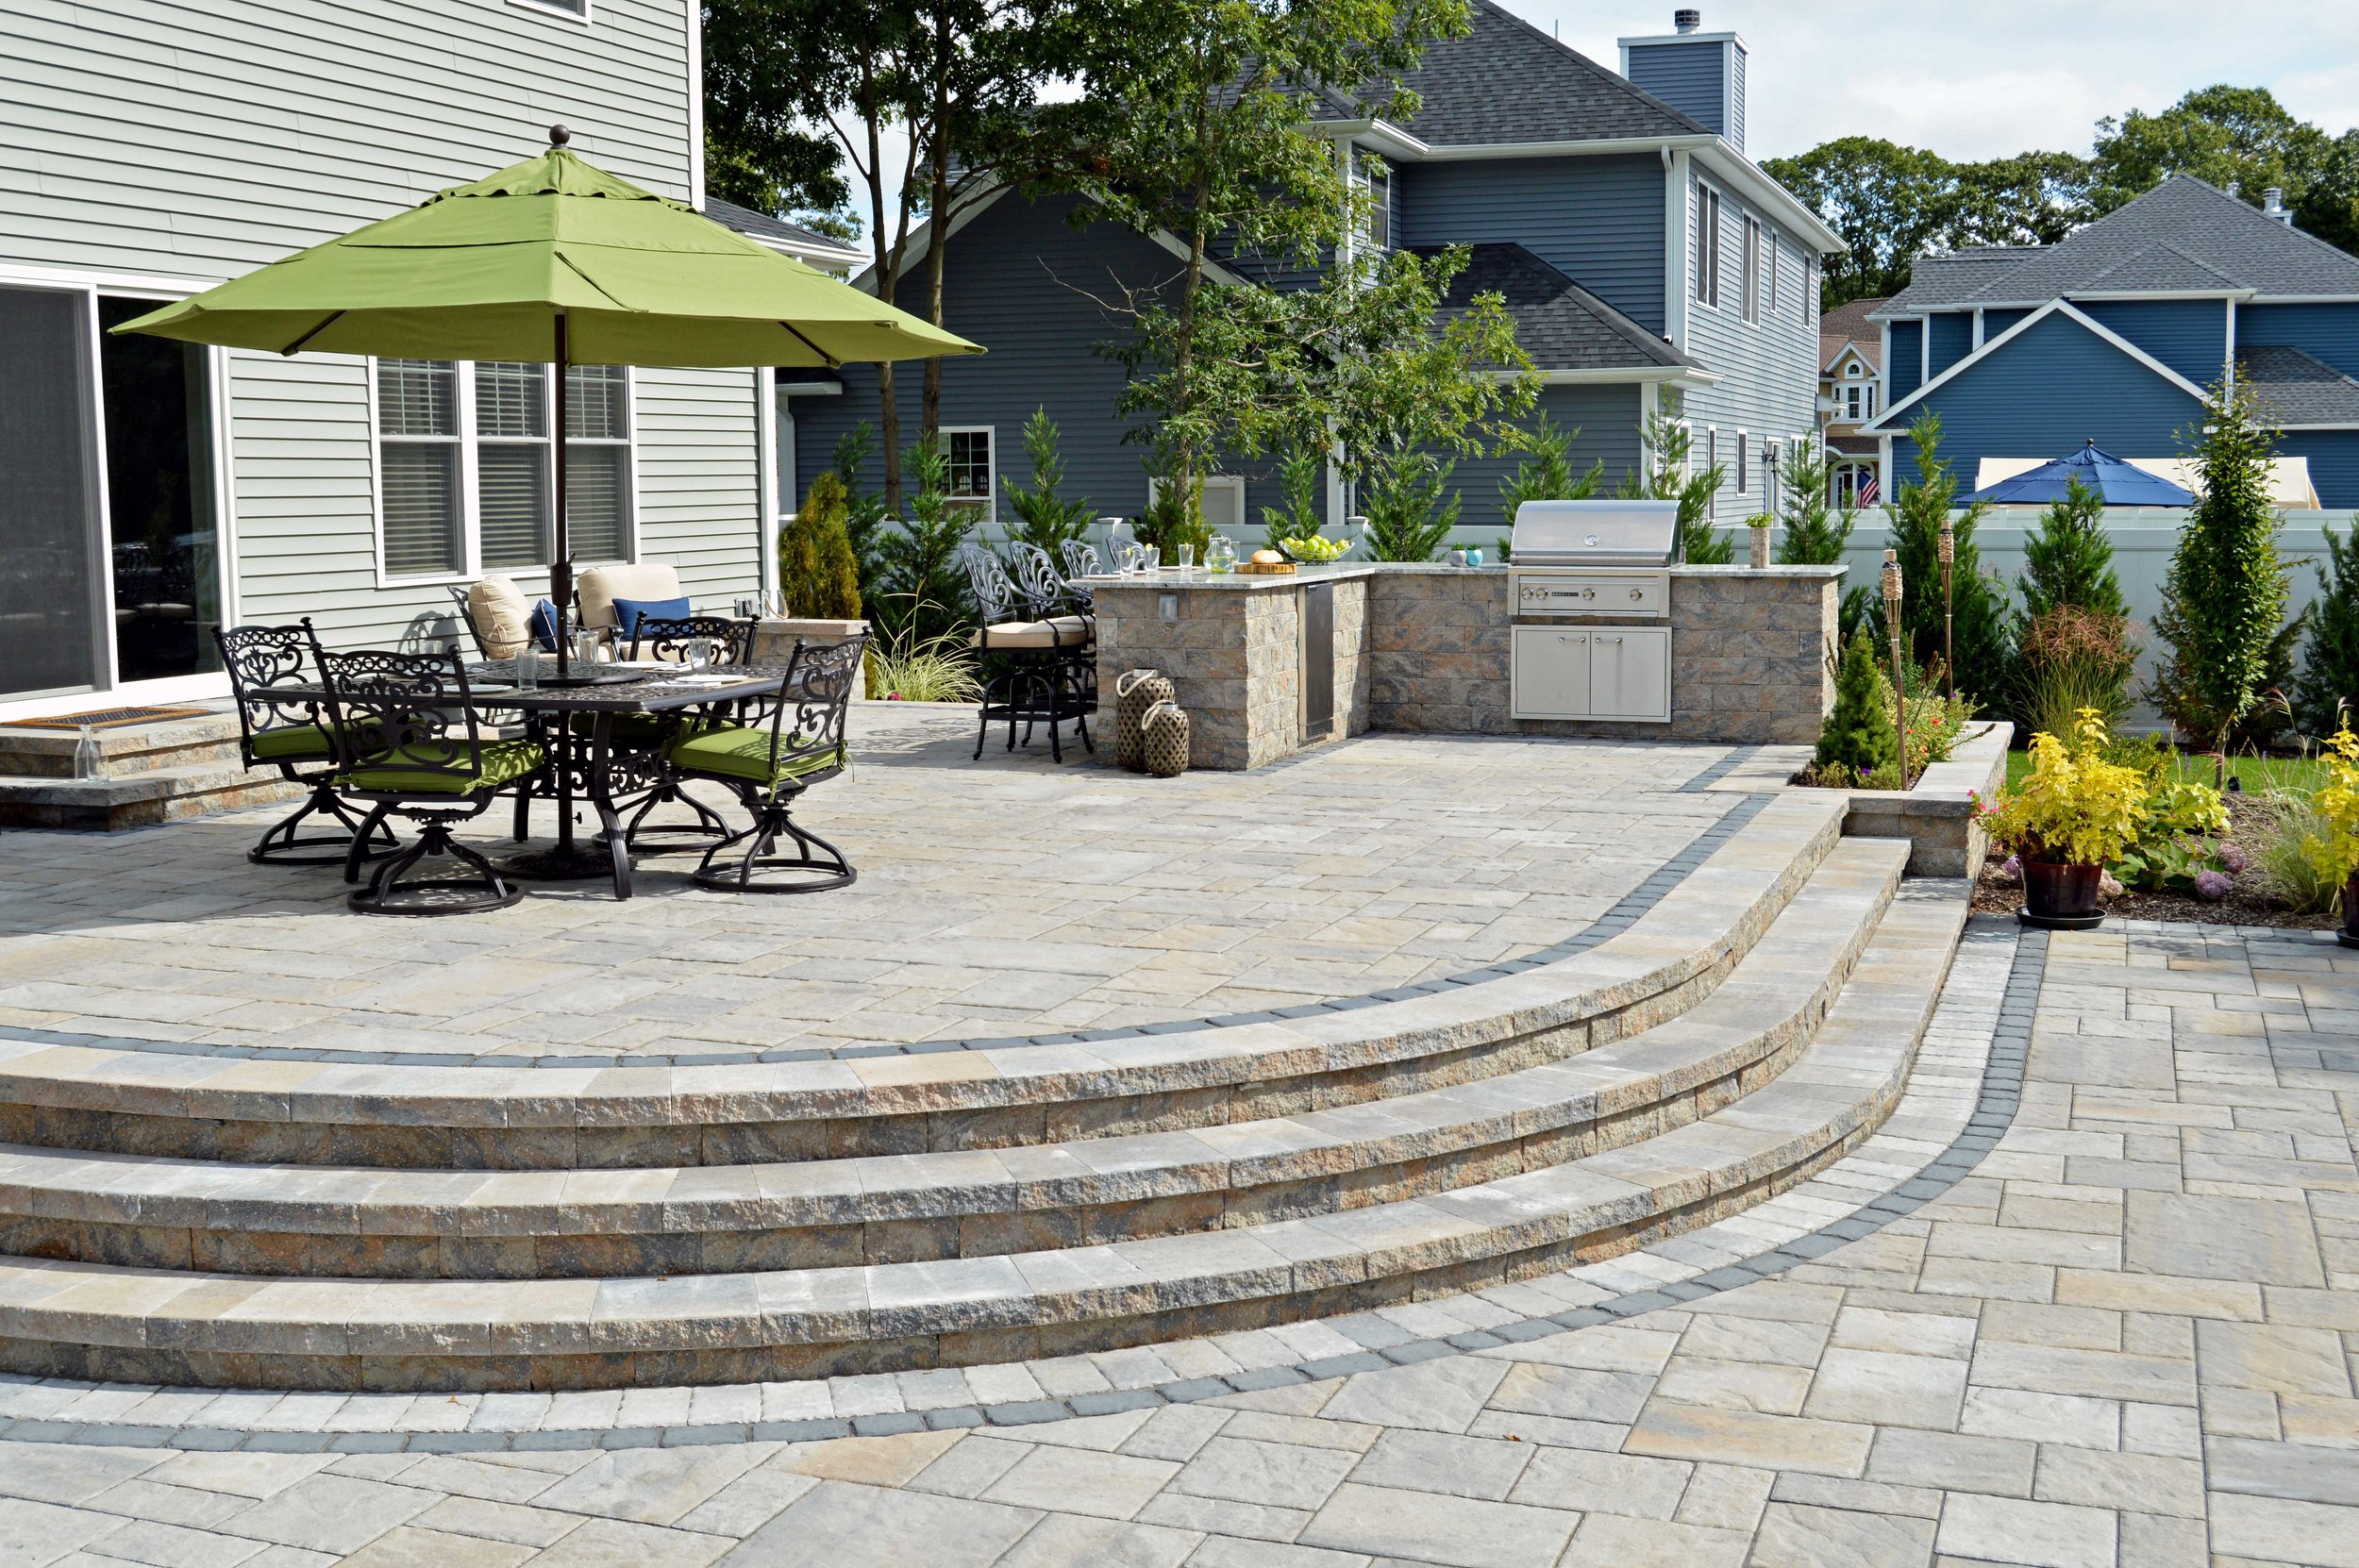 Outdoor dining on a patio in Smithtown, NY